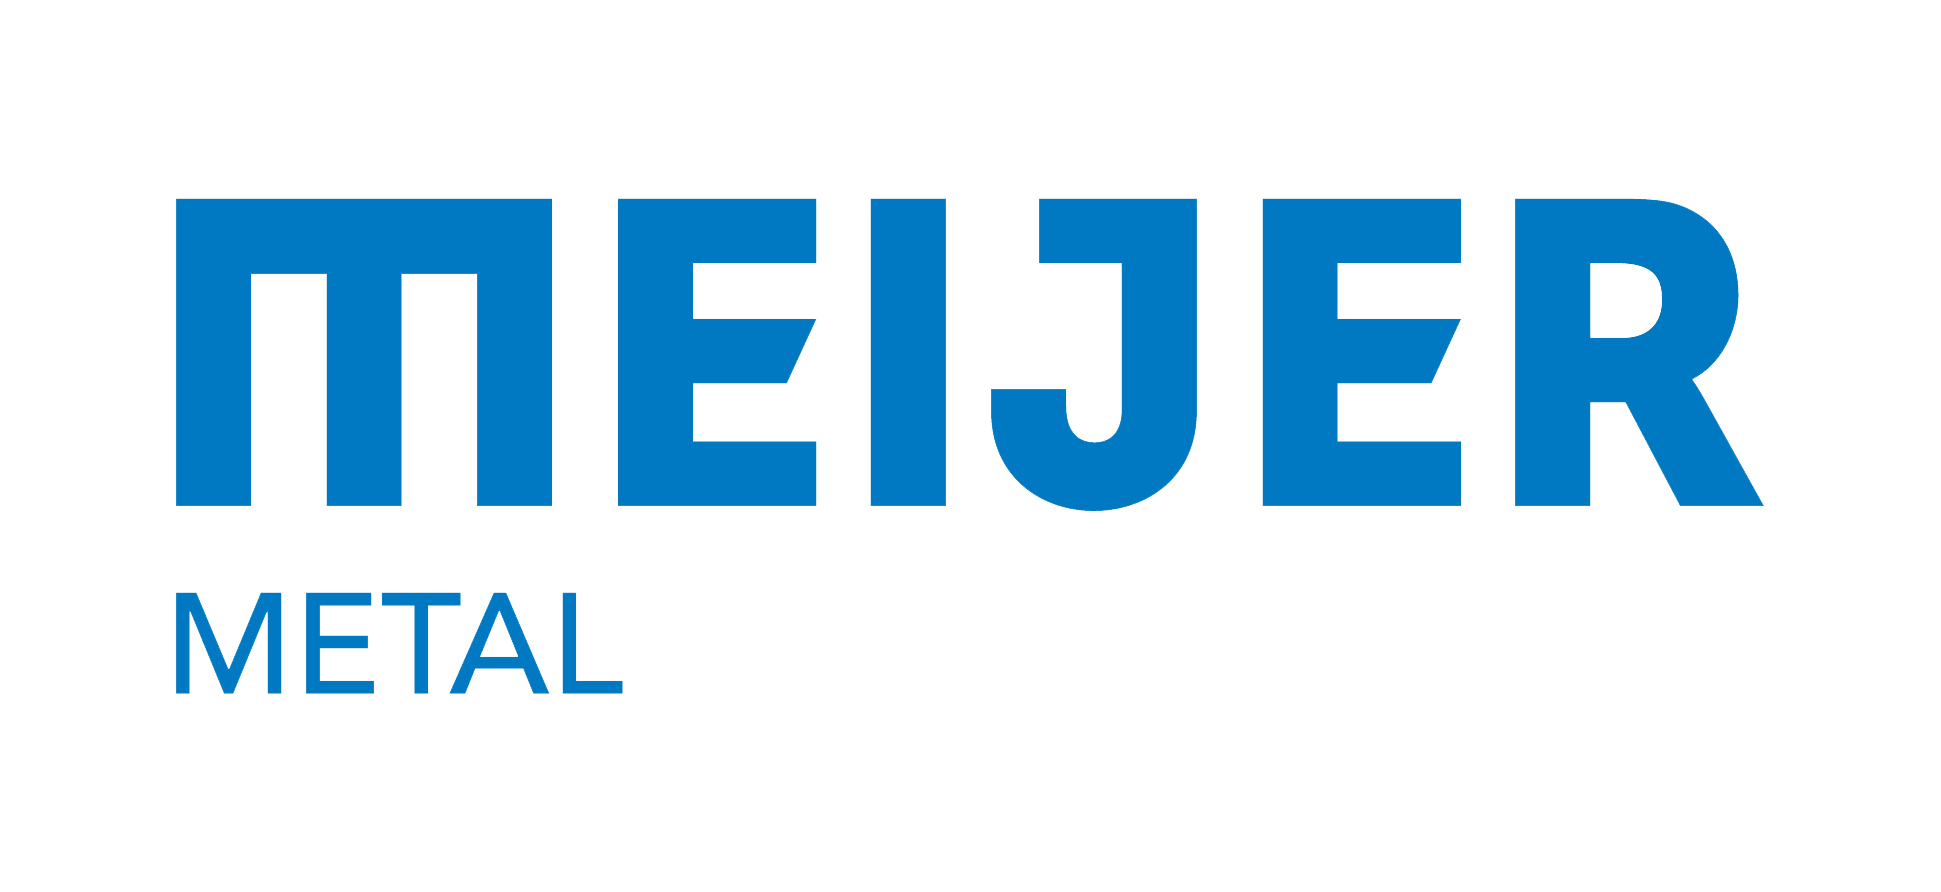 Change >> meijer-metal-logo-2016 - meijer-group.com